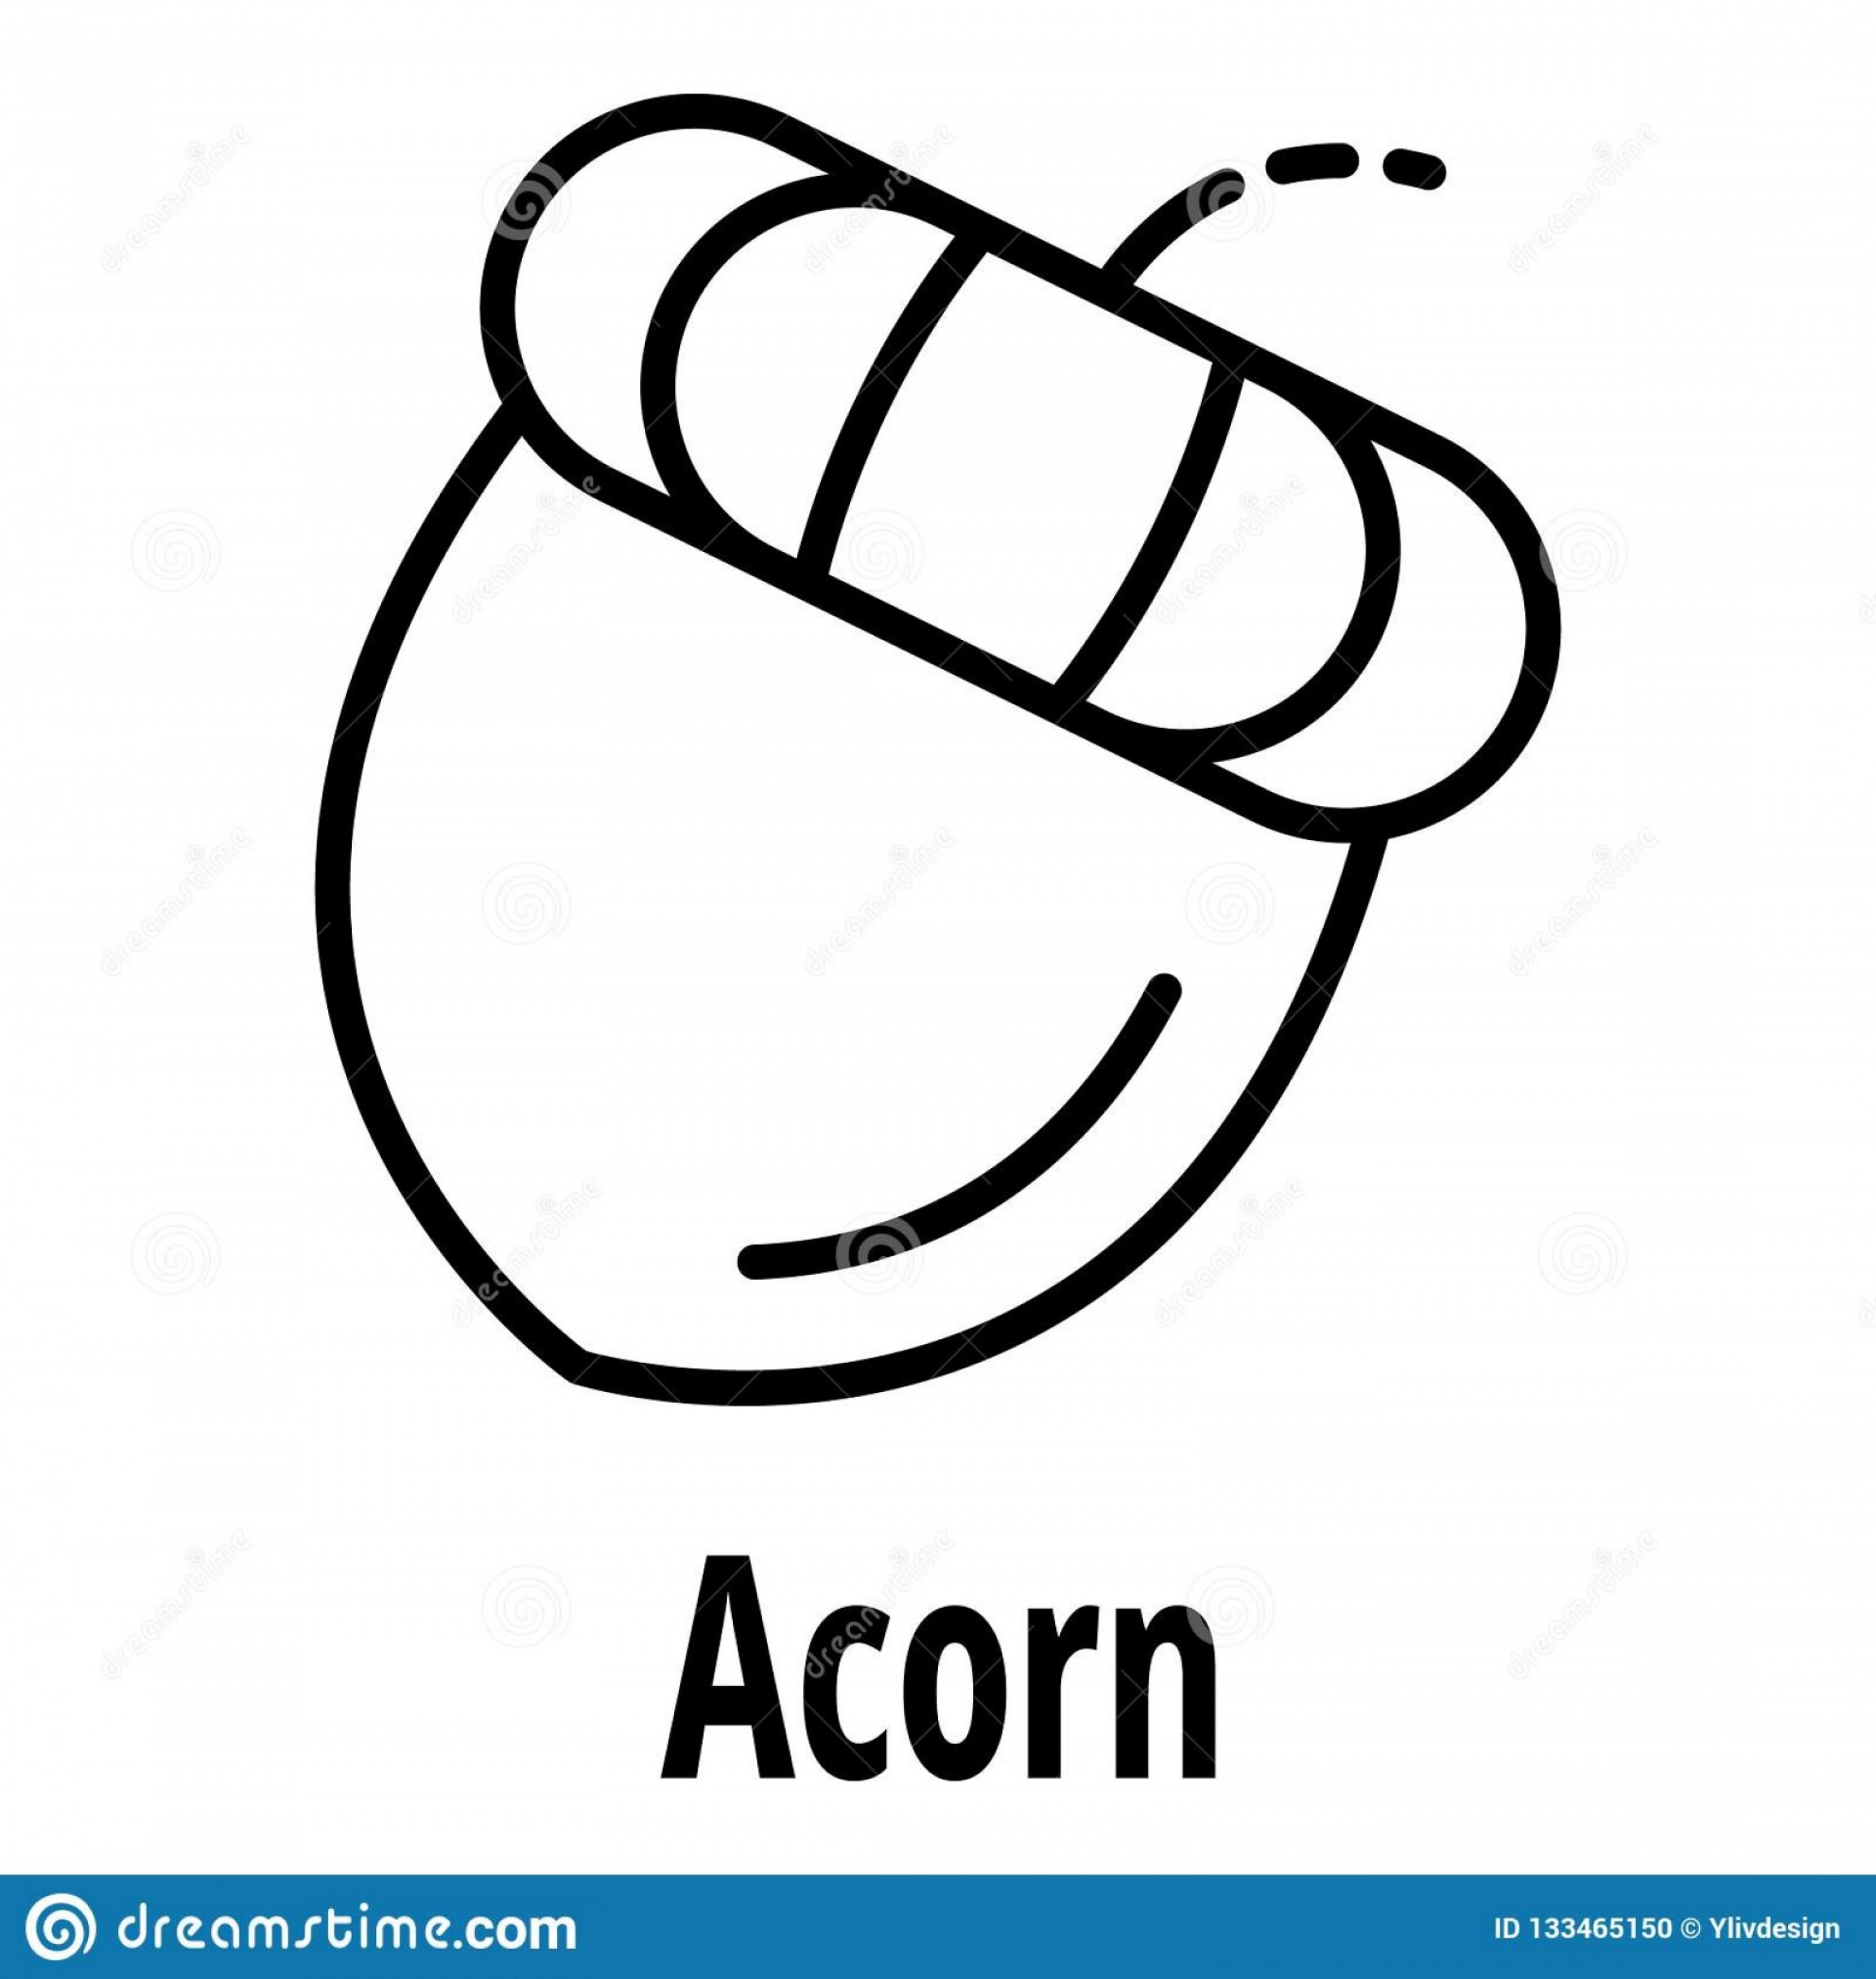 Acorn Outline Vector: Acorn Icon Outline Acorn Vector Icon Web Design Isolated White Background Acorn Icon Outline Style Image